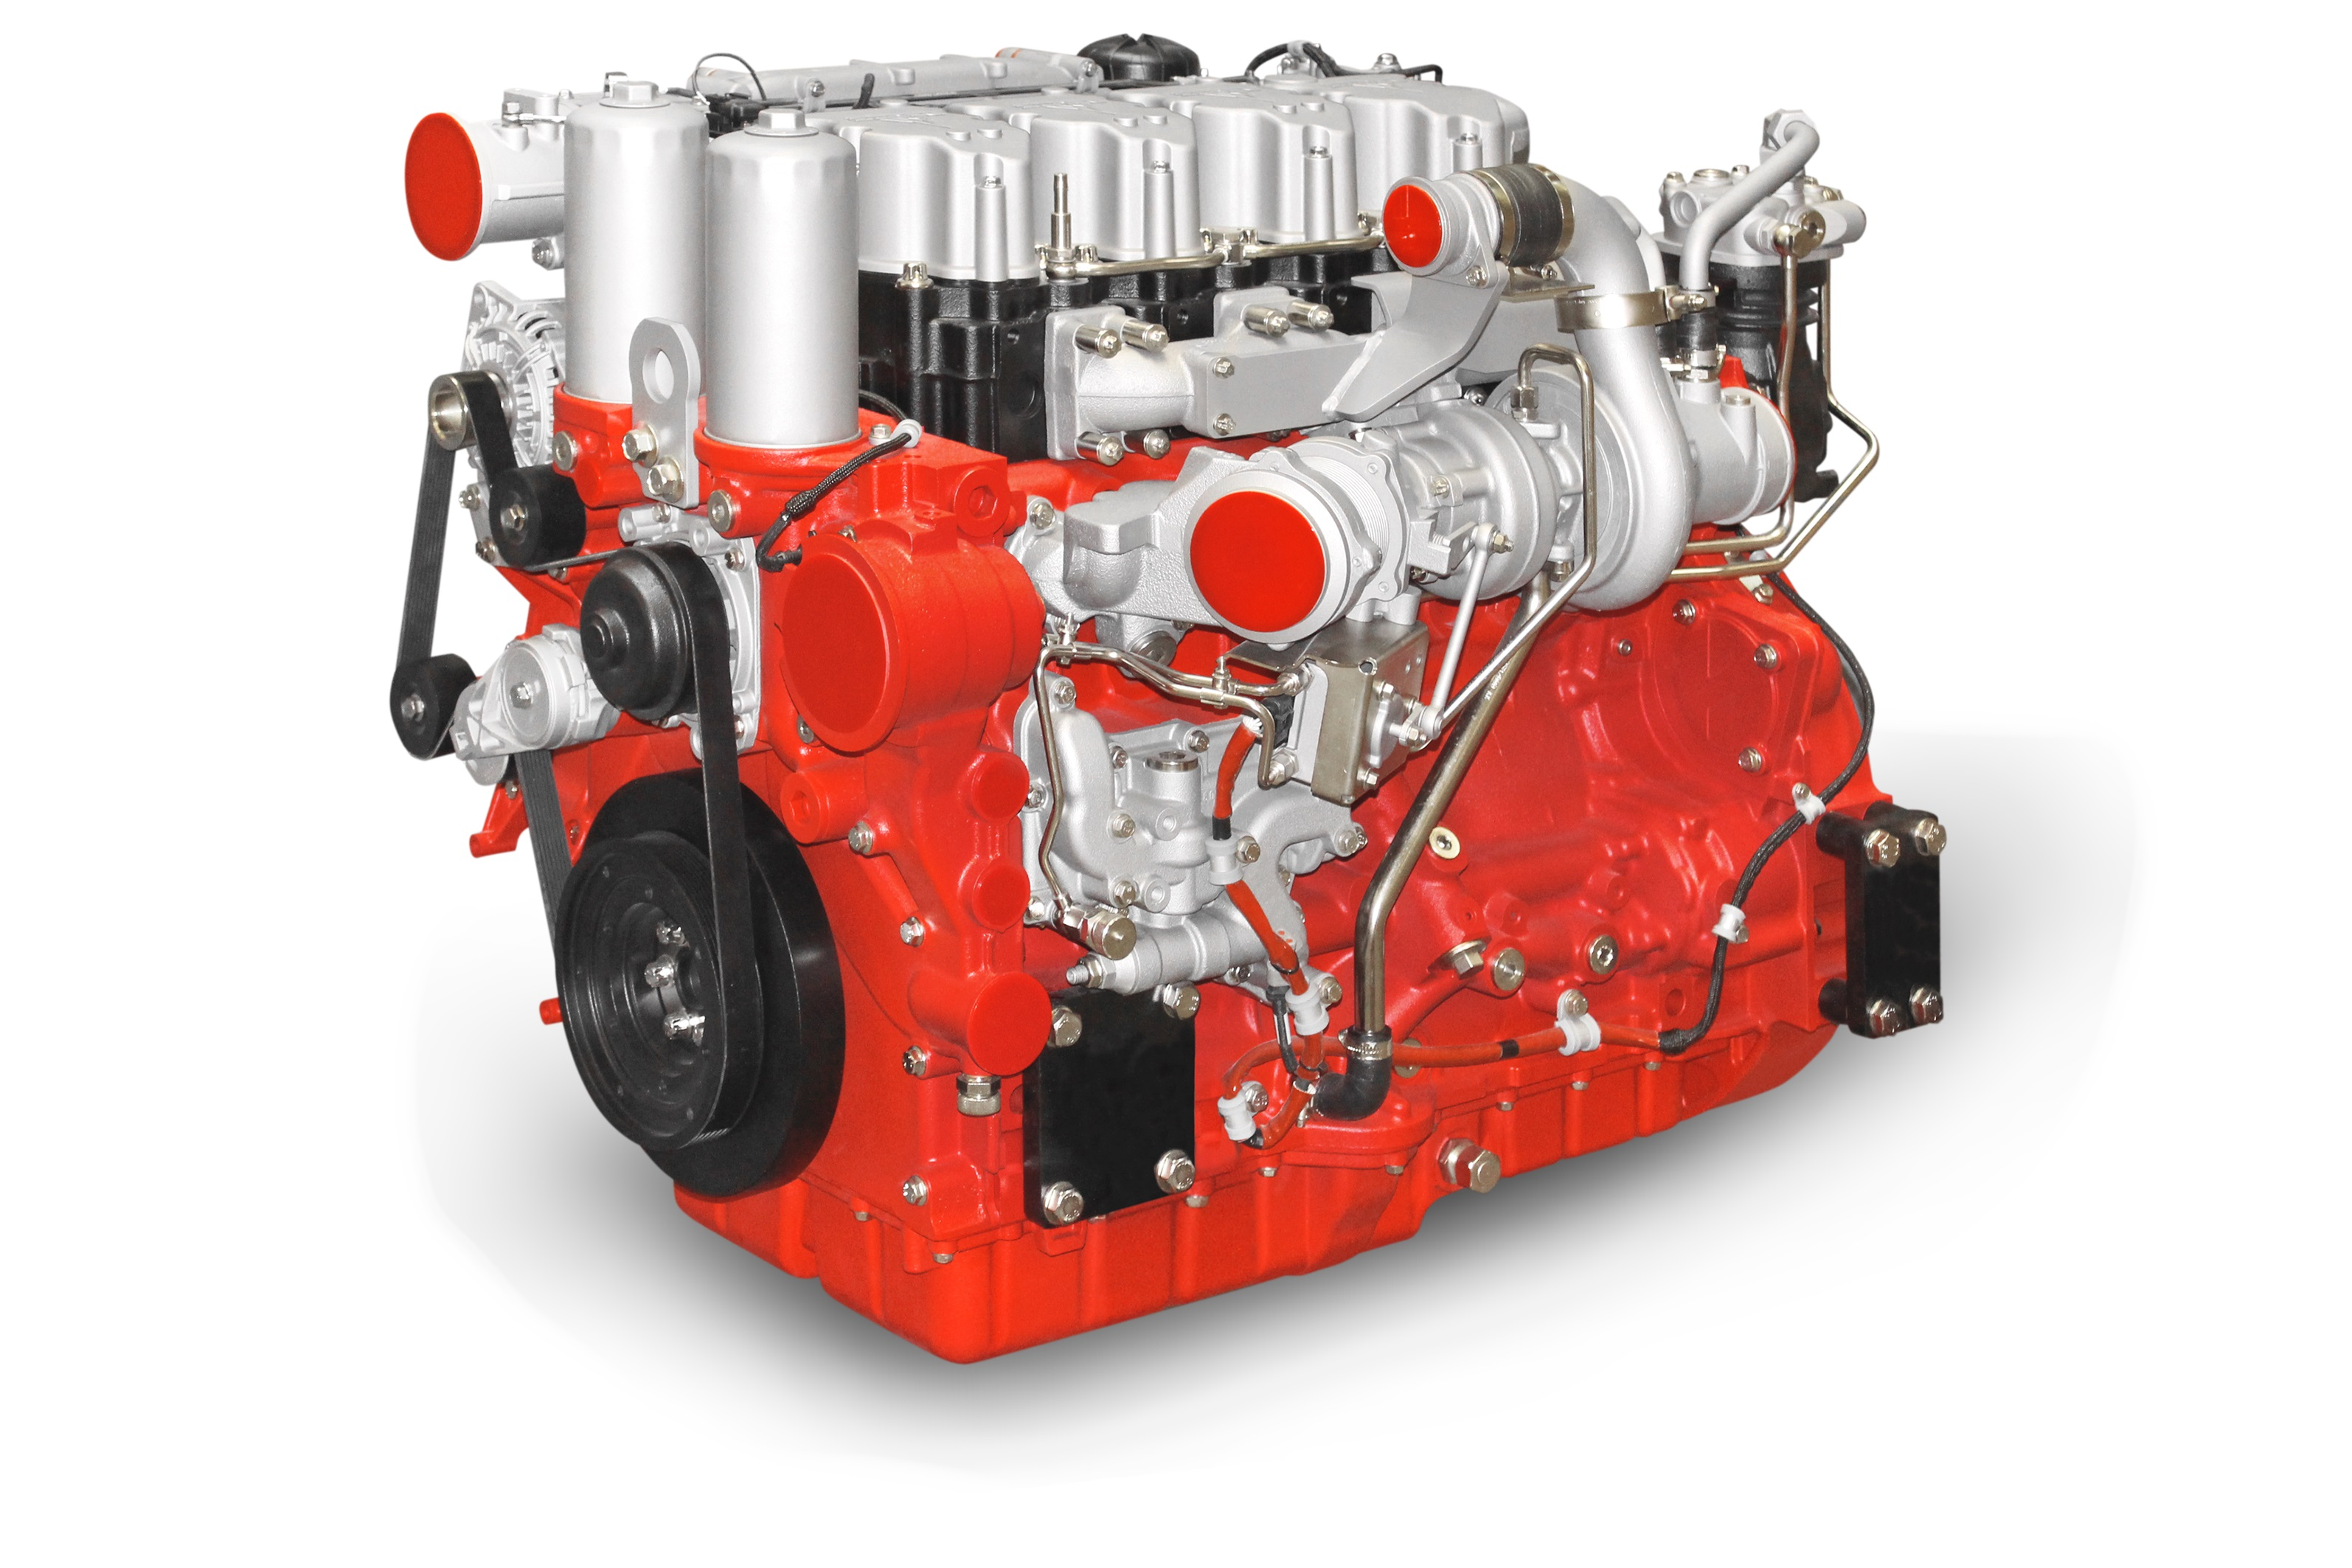 55 ENGINE Spark Plug Coil Replacement further 3748574 as well Top 5 Mileage Motorcycles In India furthermore Porsche Cayman 3 likewise Content. on two cylinder motor view